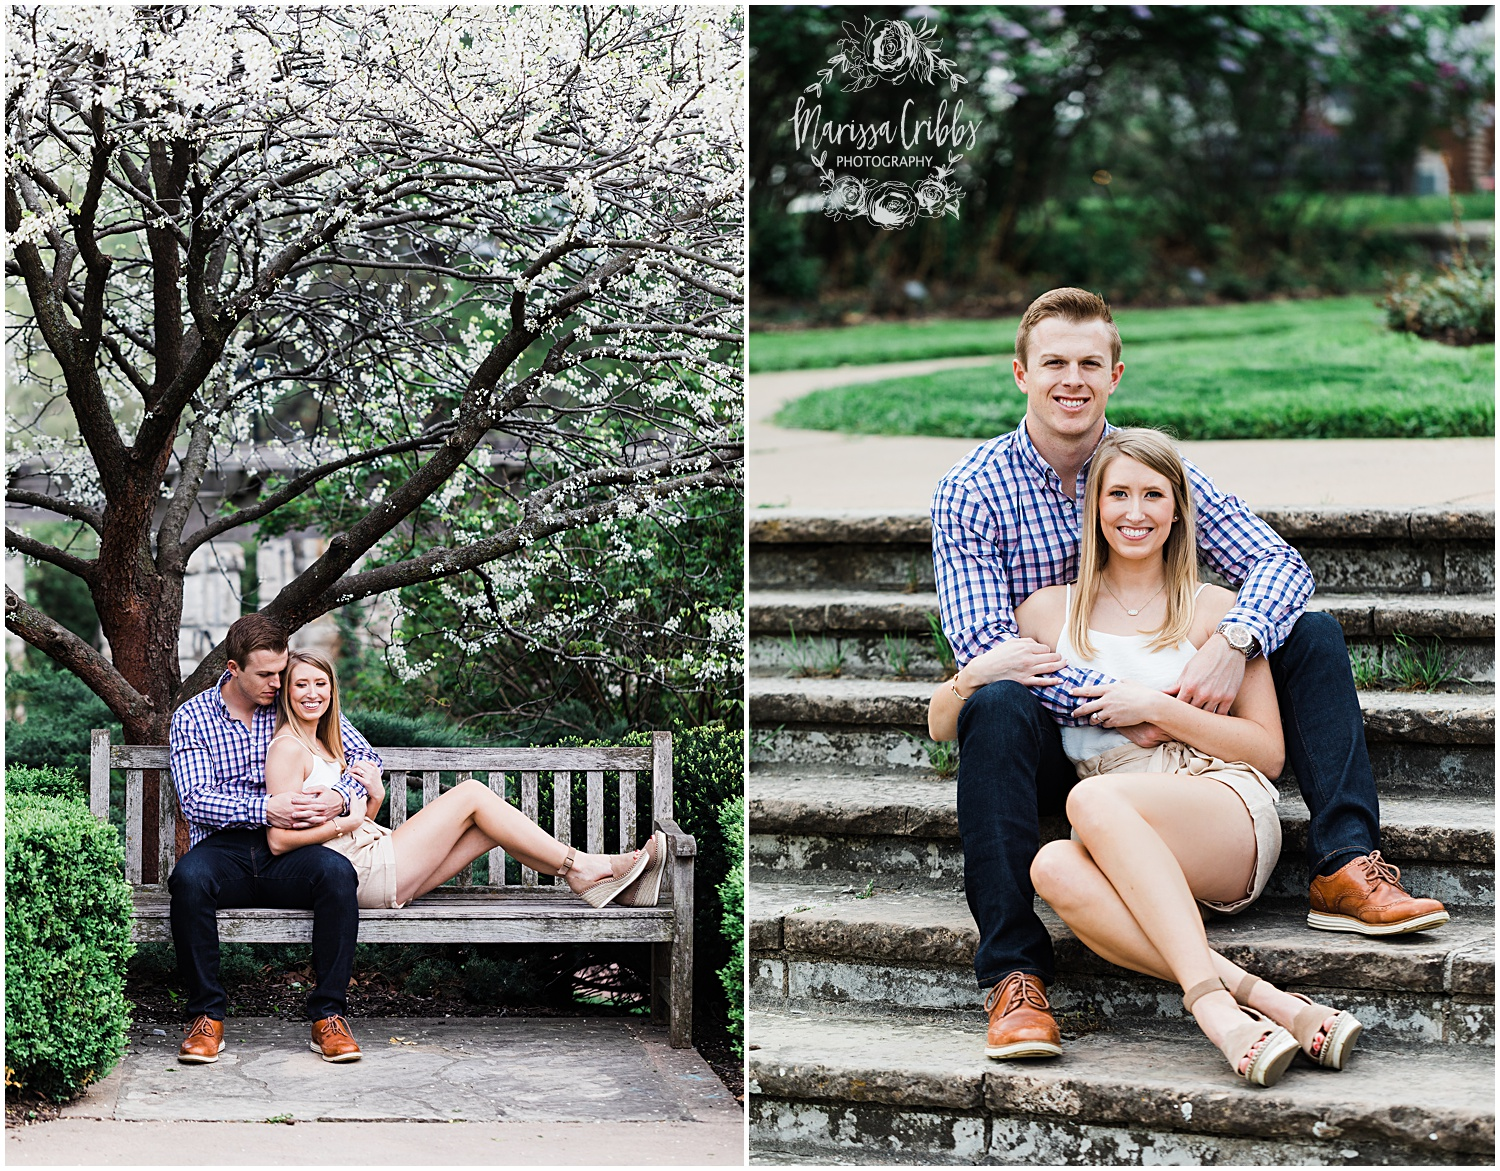 MADDY & KYLE ENGAGEMENT | MARISSA CRIBBS PHOTOGRAPHY_7609.jpg